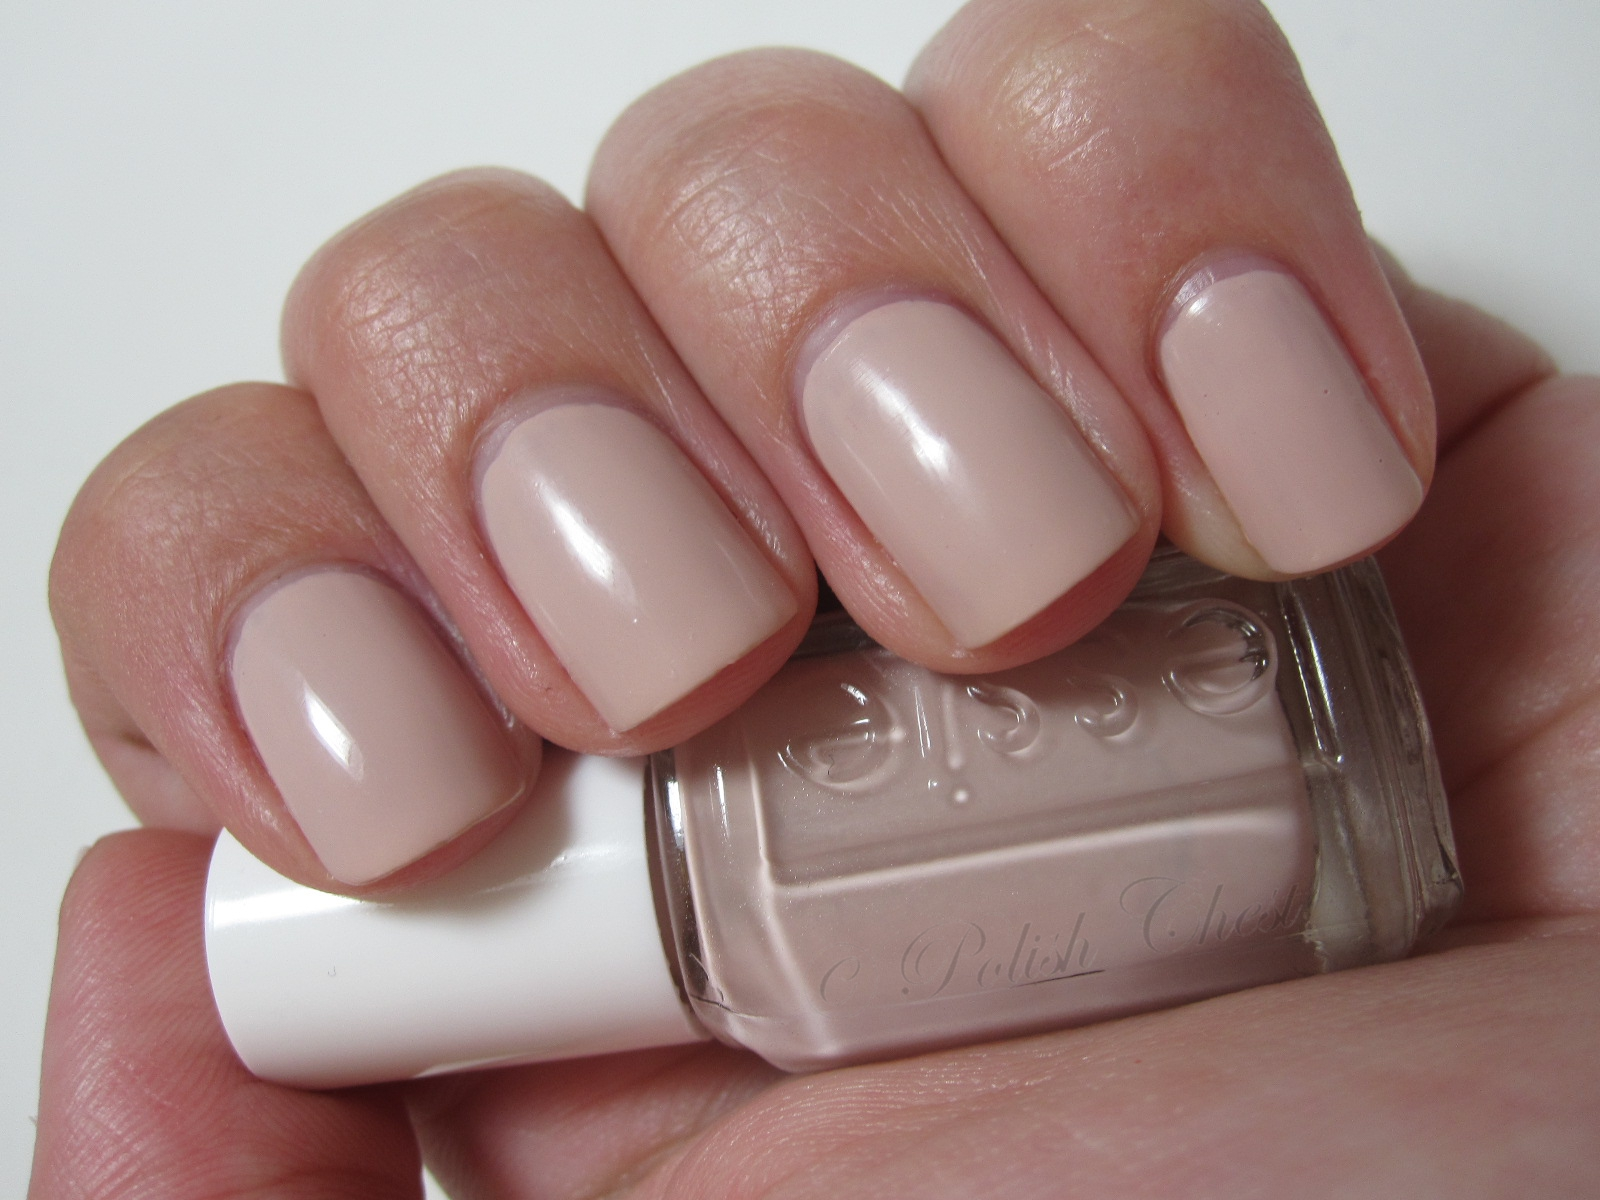 The Nailbourhood: NOTD Essie Topless & Barefoot with